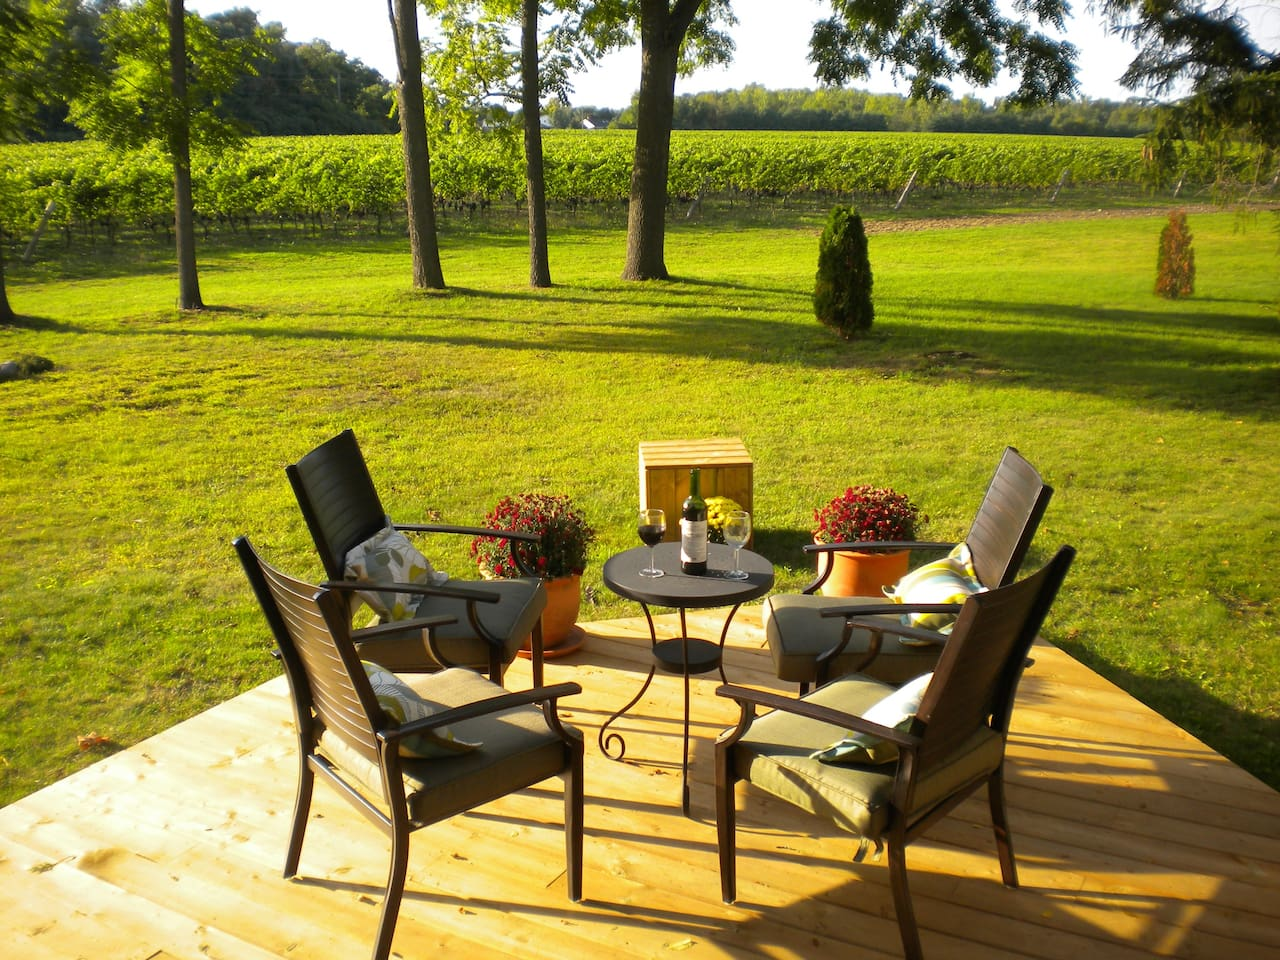 Patio overlooking vineyards is available for guests use.It is a place where breakfast is served - weather permiting